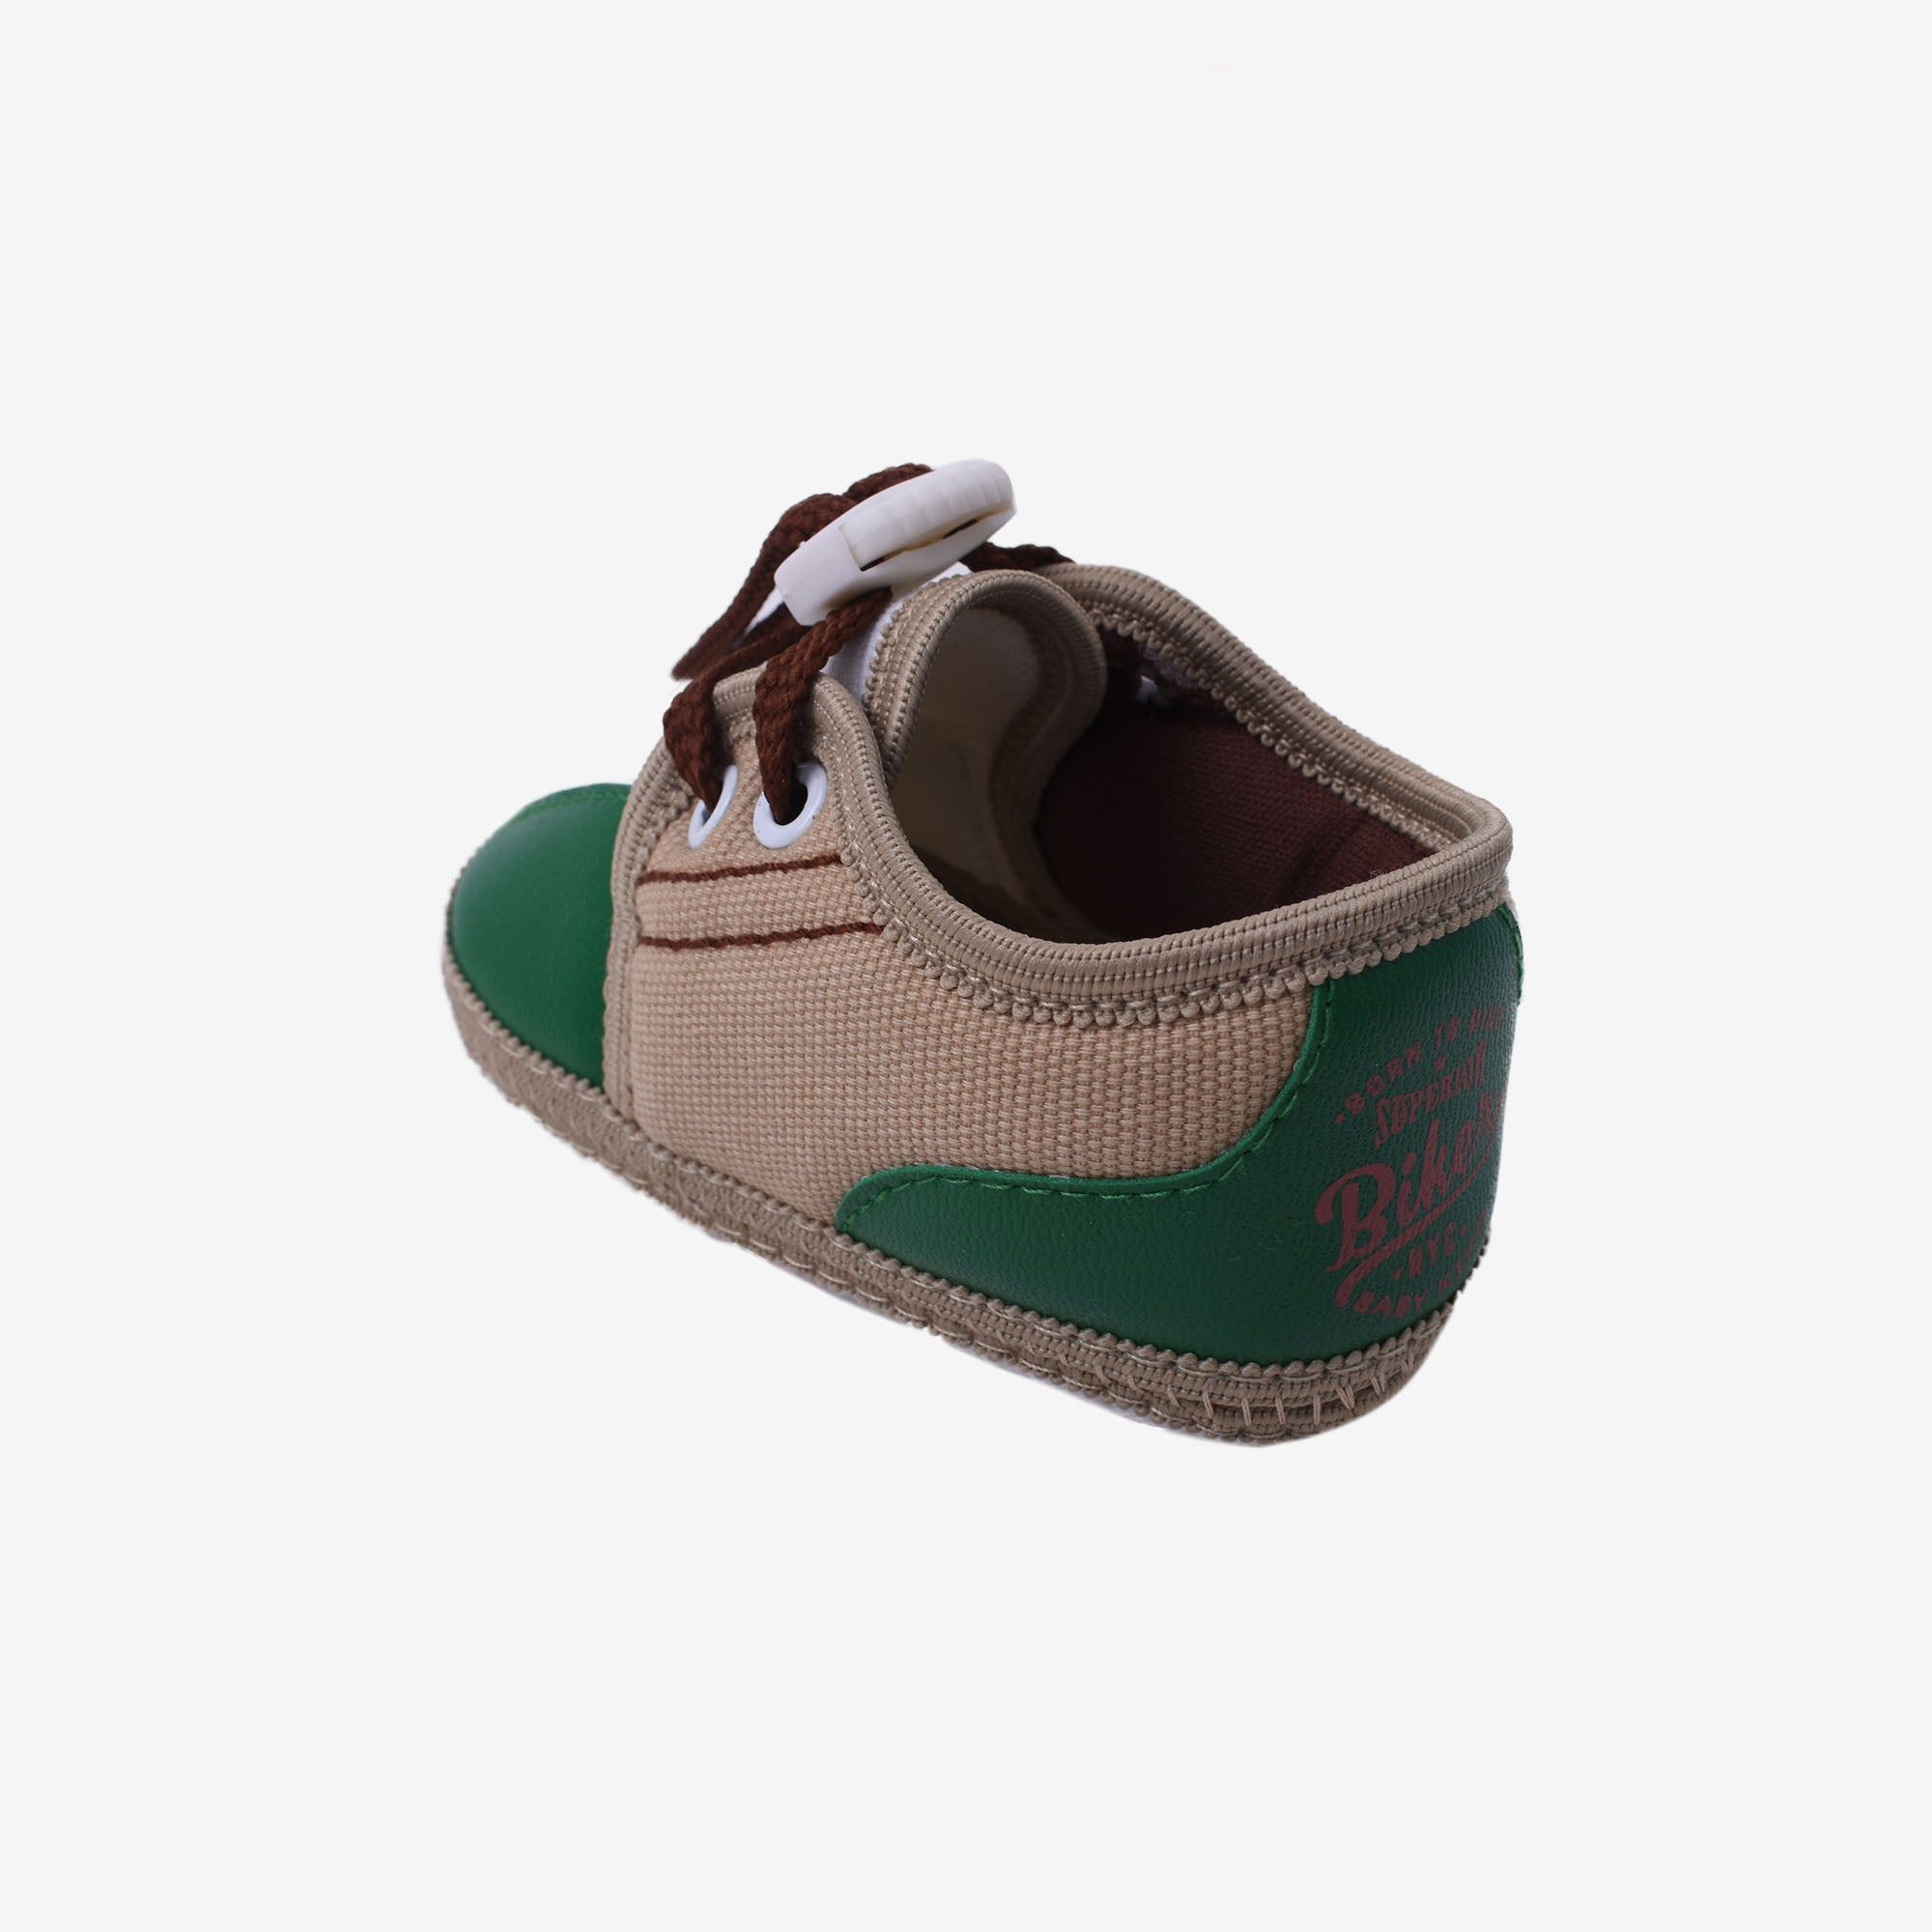 Newborn Textile Shoes - Green